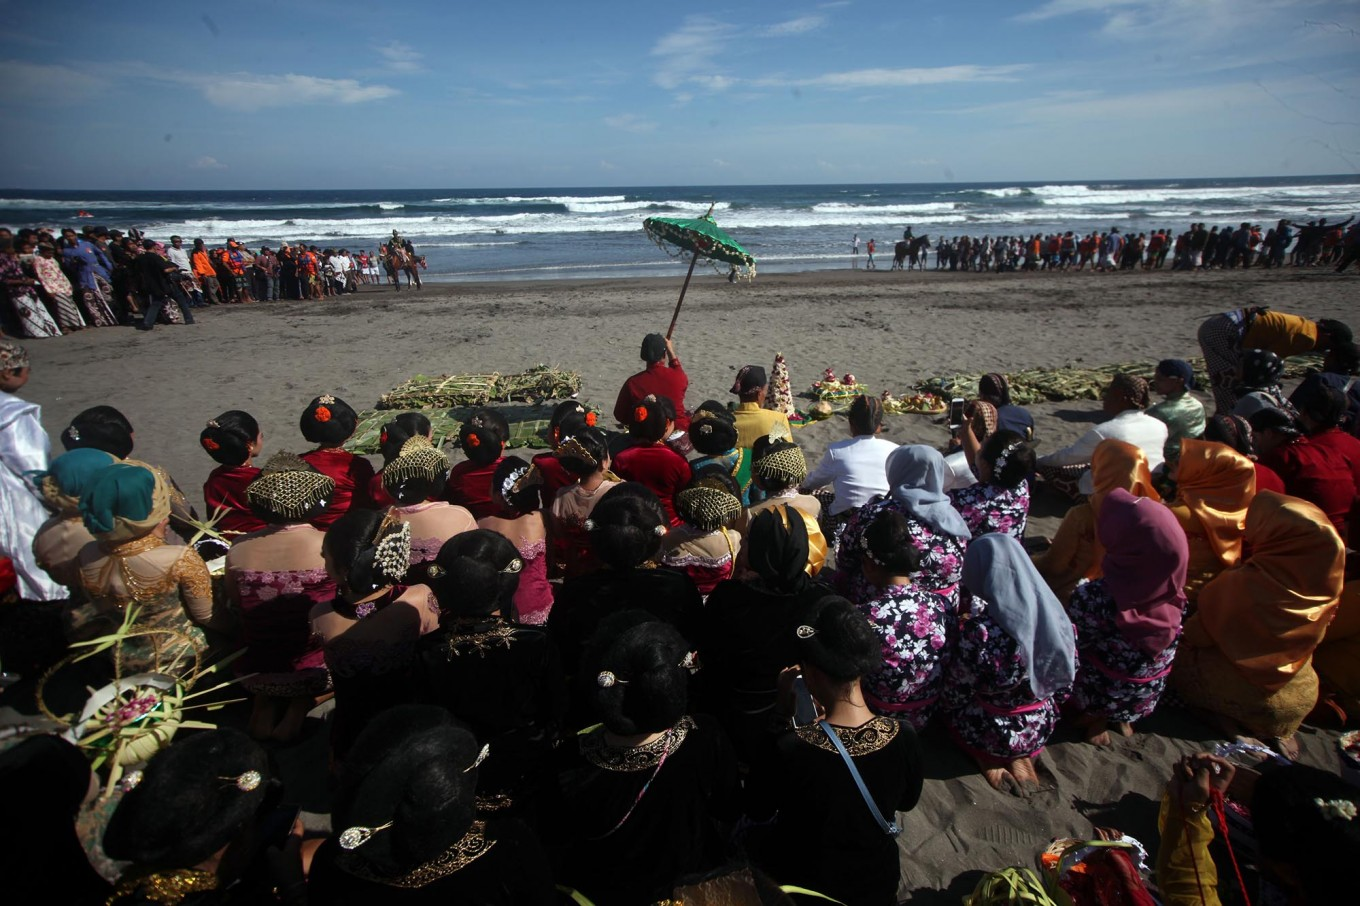 People pray on the beach before proceeding with the ceremony. JP/Boy T. Harjanto